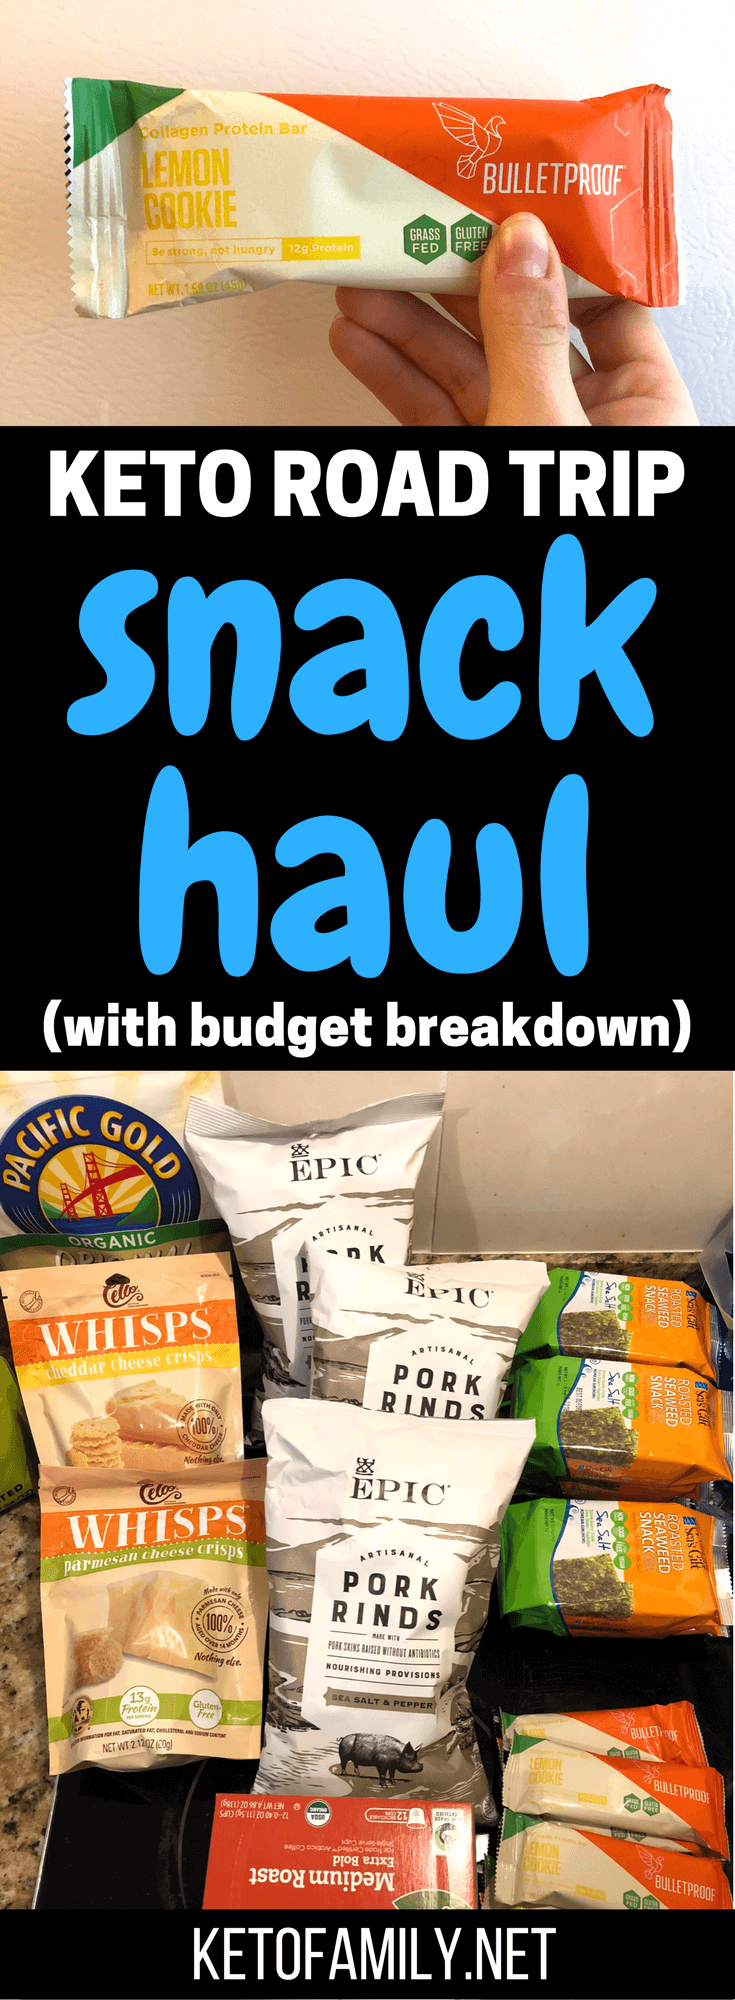 Trying to keep keto on a road trip? Check out our breakdown of the best keto-friendly road trip snacks you can get (with a price breakdown of how much we saved by not going out to eat)!